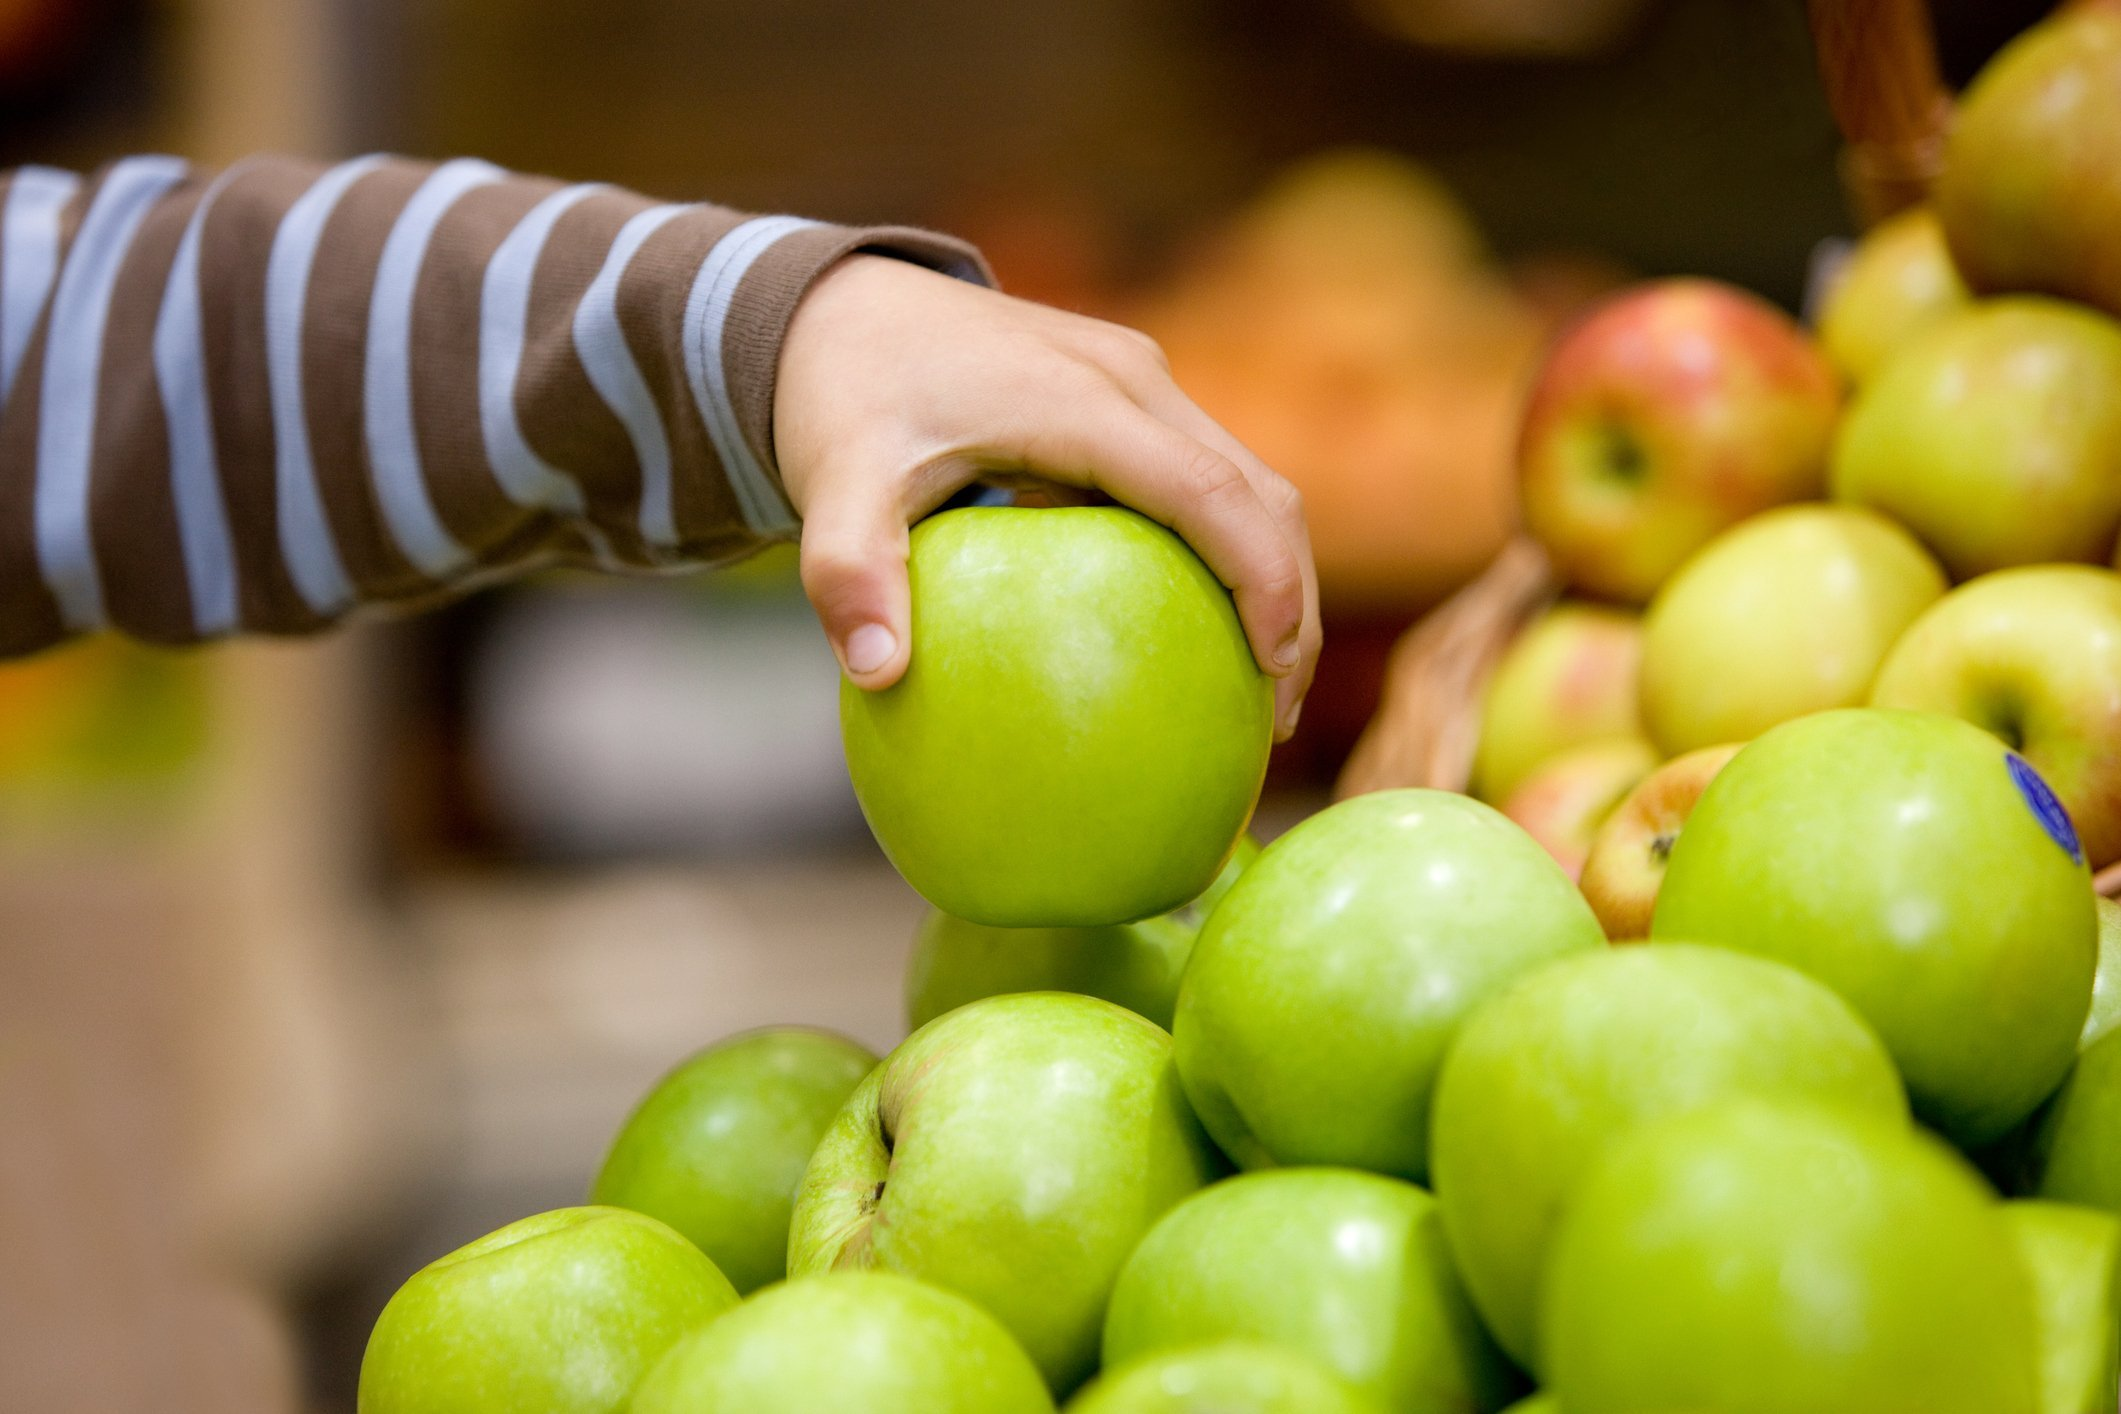 An image showing a child's hand holding an apple   Photo: Getty Images